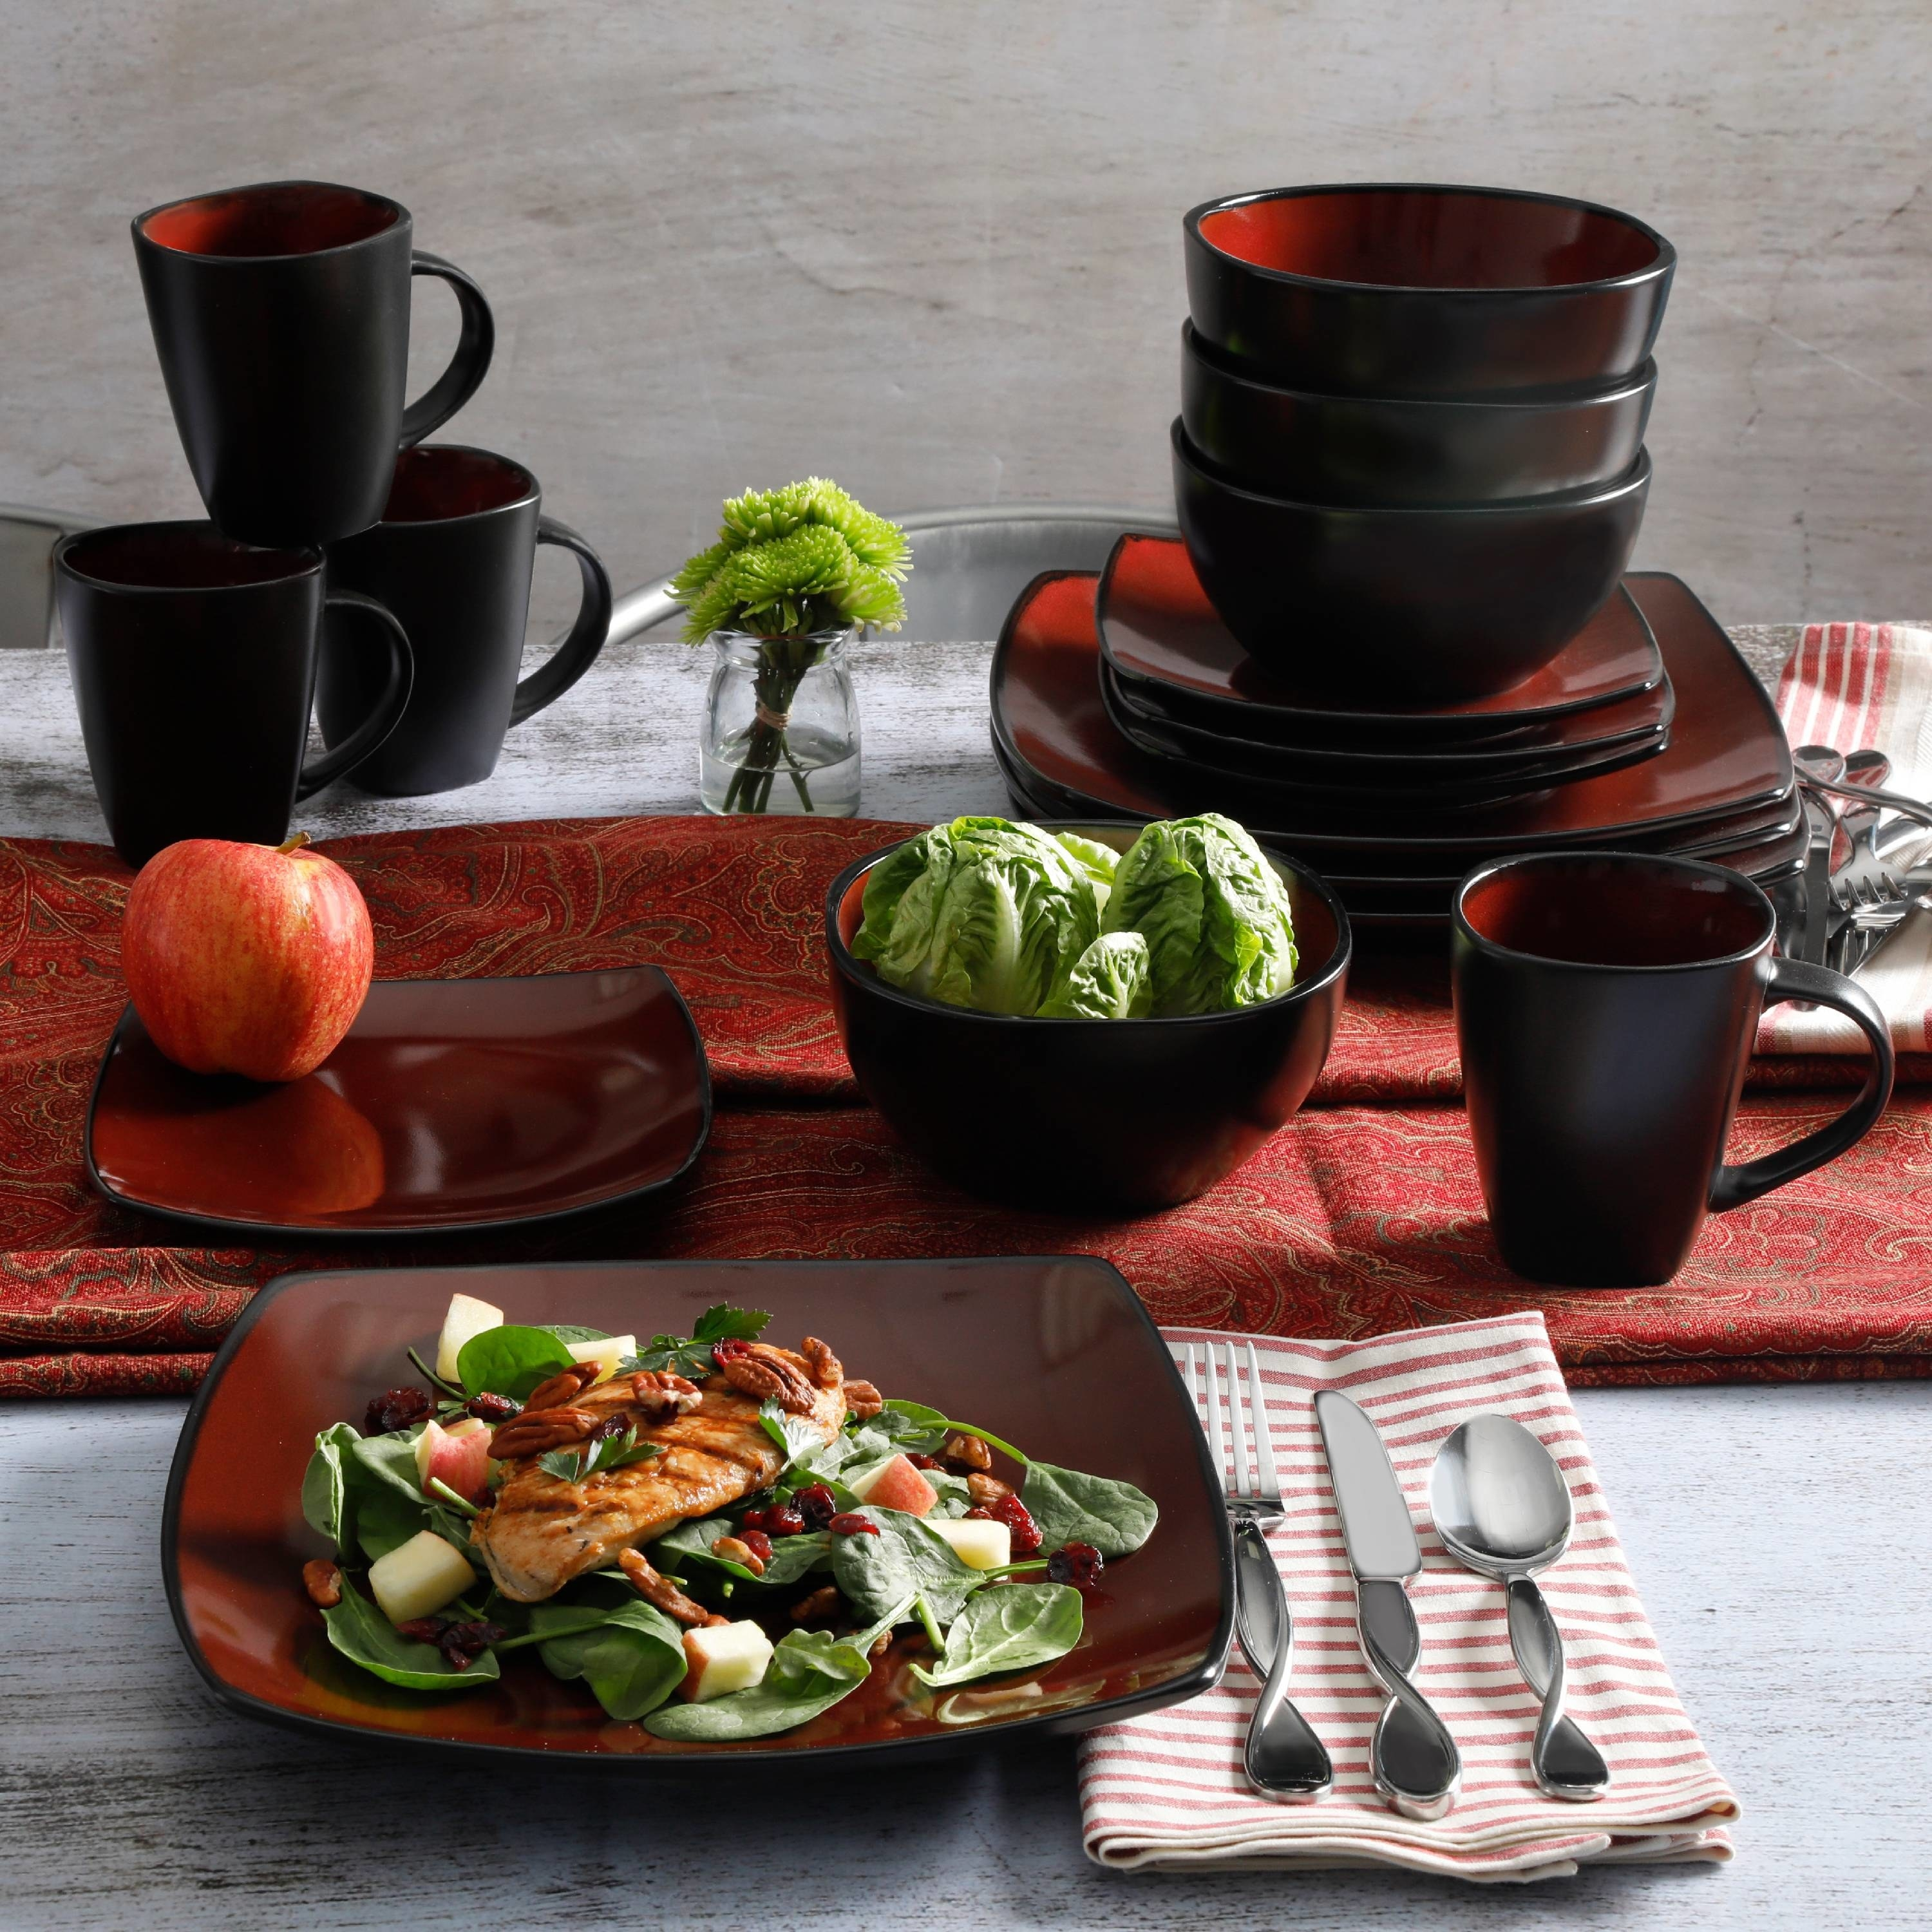 the red and black dinnerware set with salad and chicken on the plate